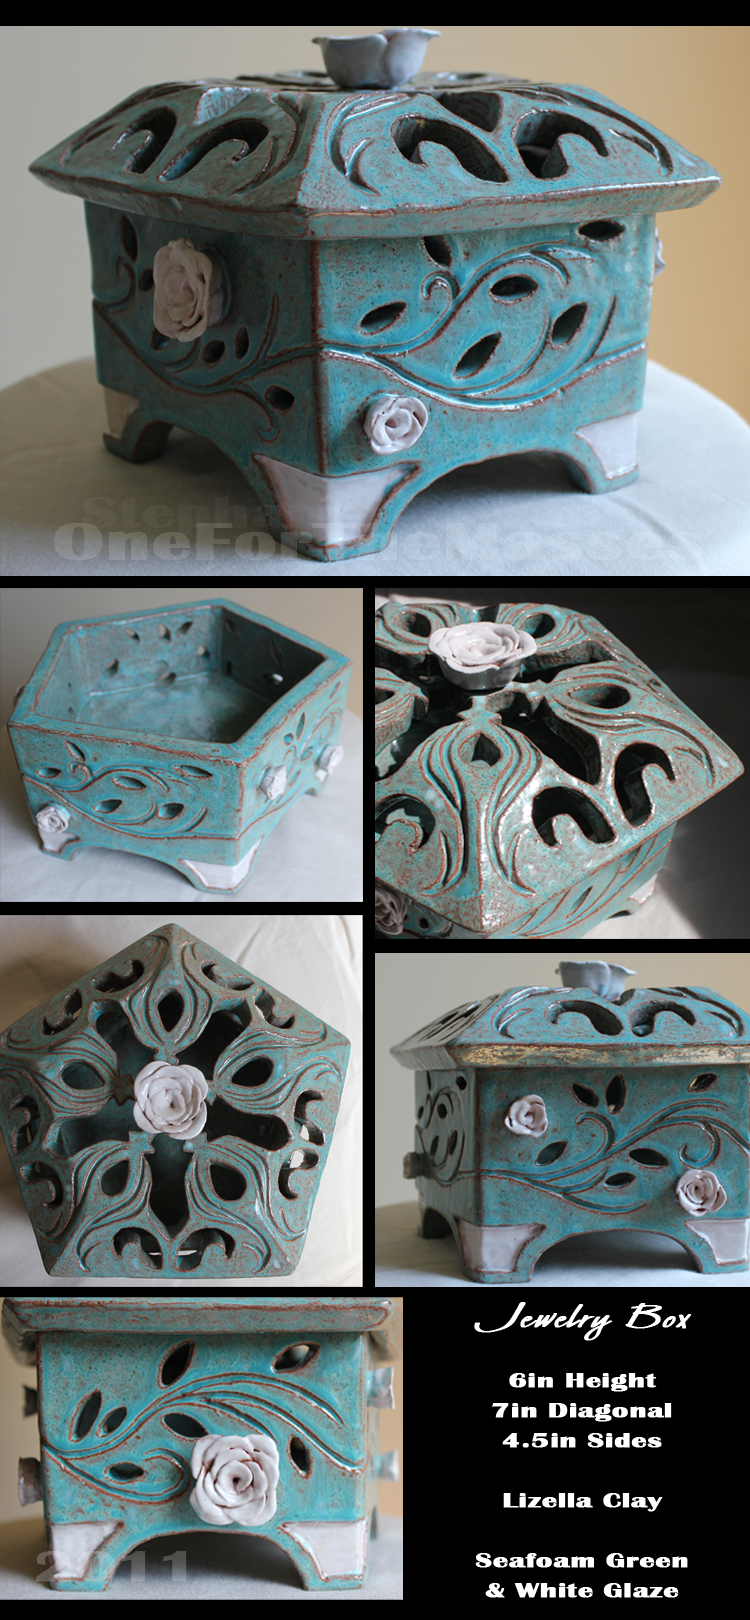 Jewelry Box by OneForTheMasses.deviantart.com on @DeviantArt